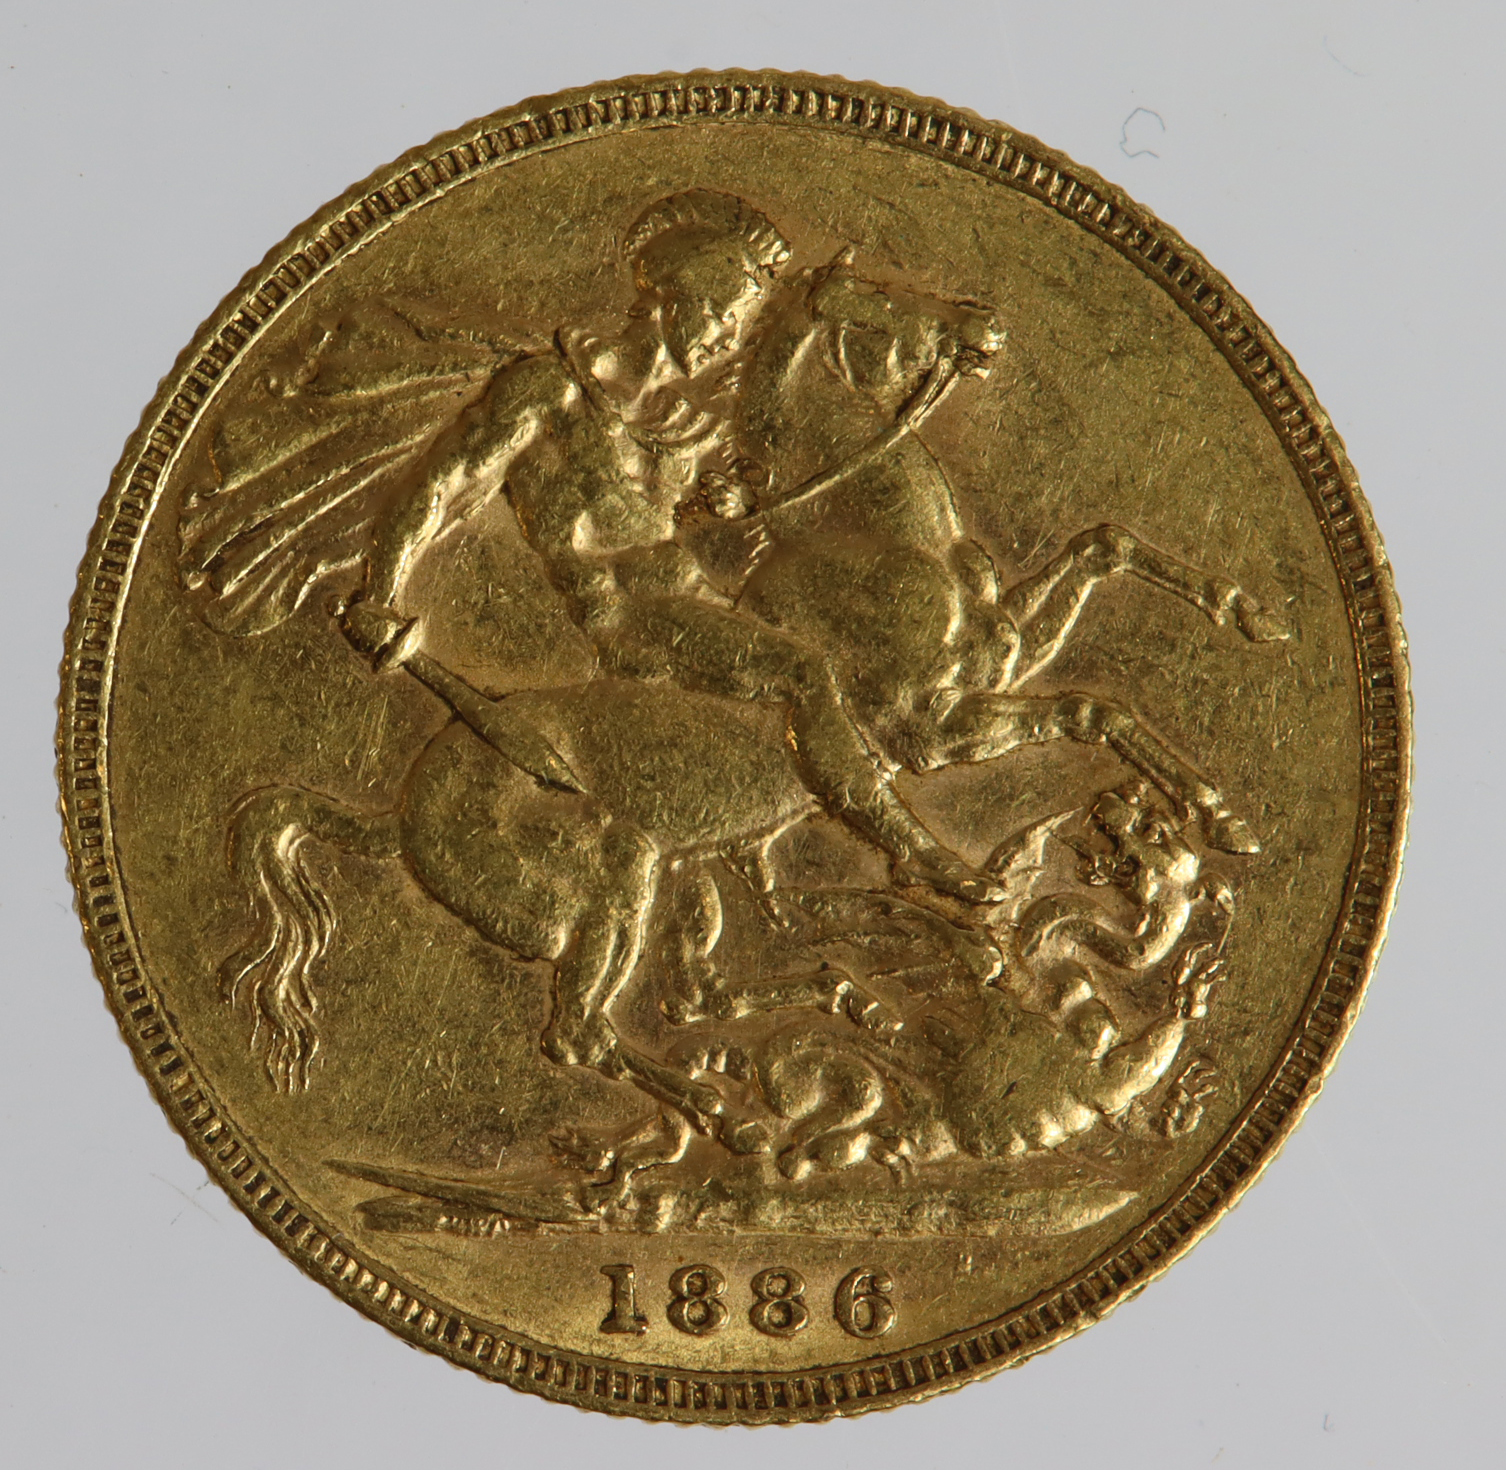 Sovereign 1886m (St George) VF - Image 2 of 2